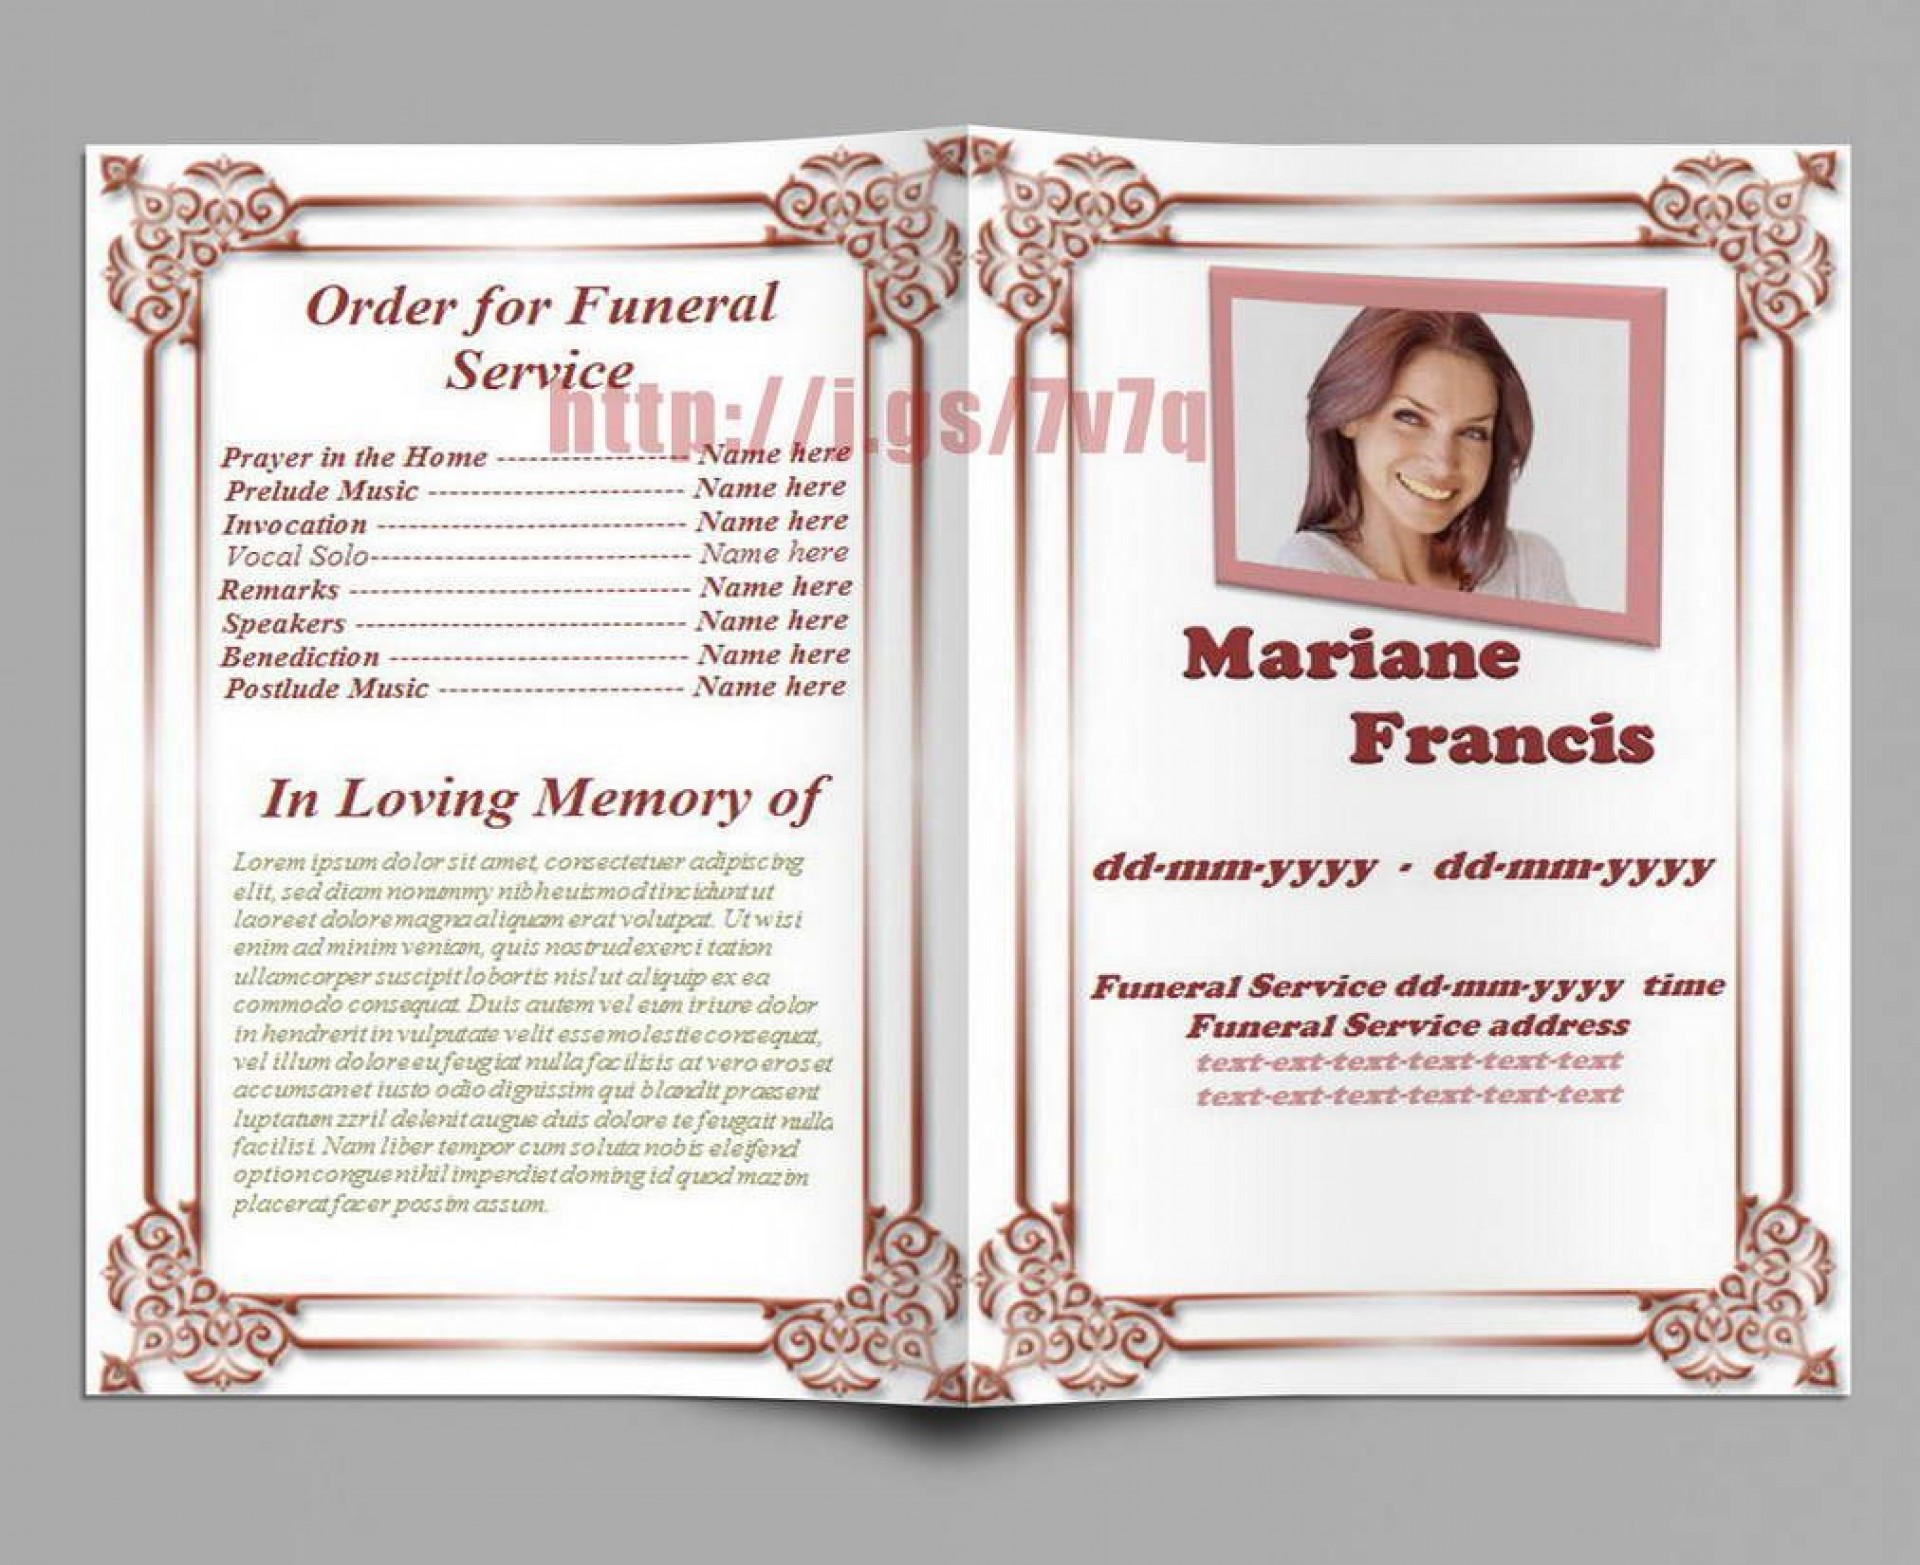 007 Formidable Memorial Card Template Free Download High Resolution 1920